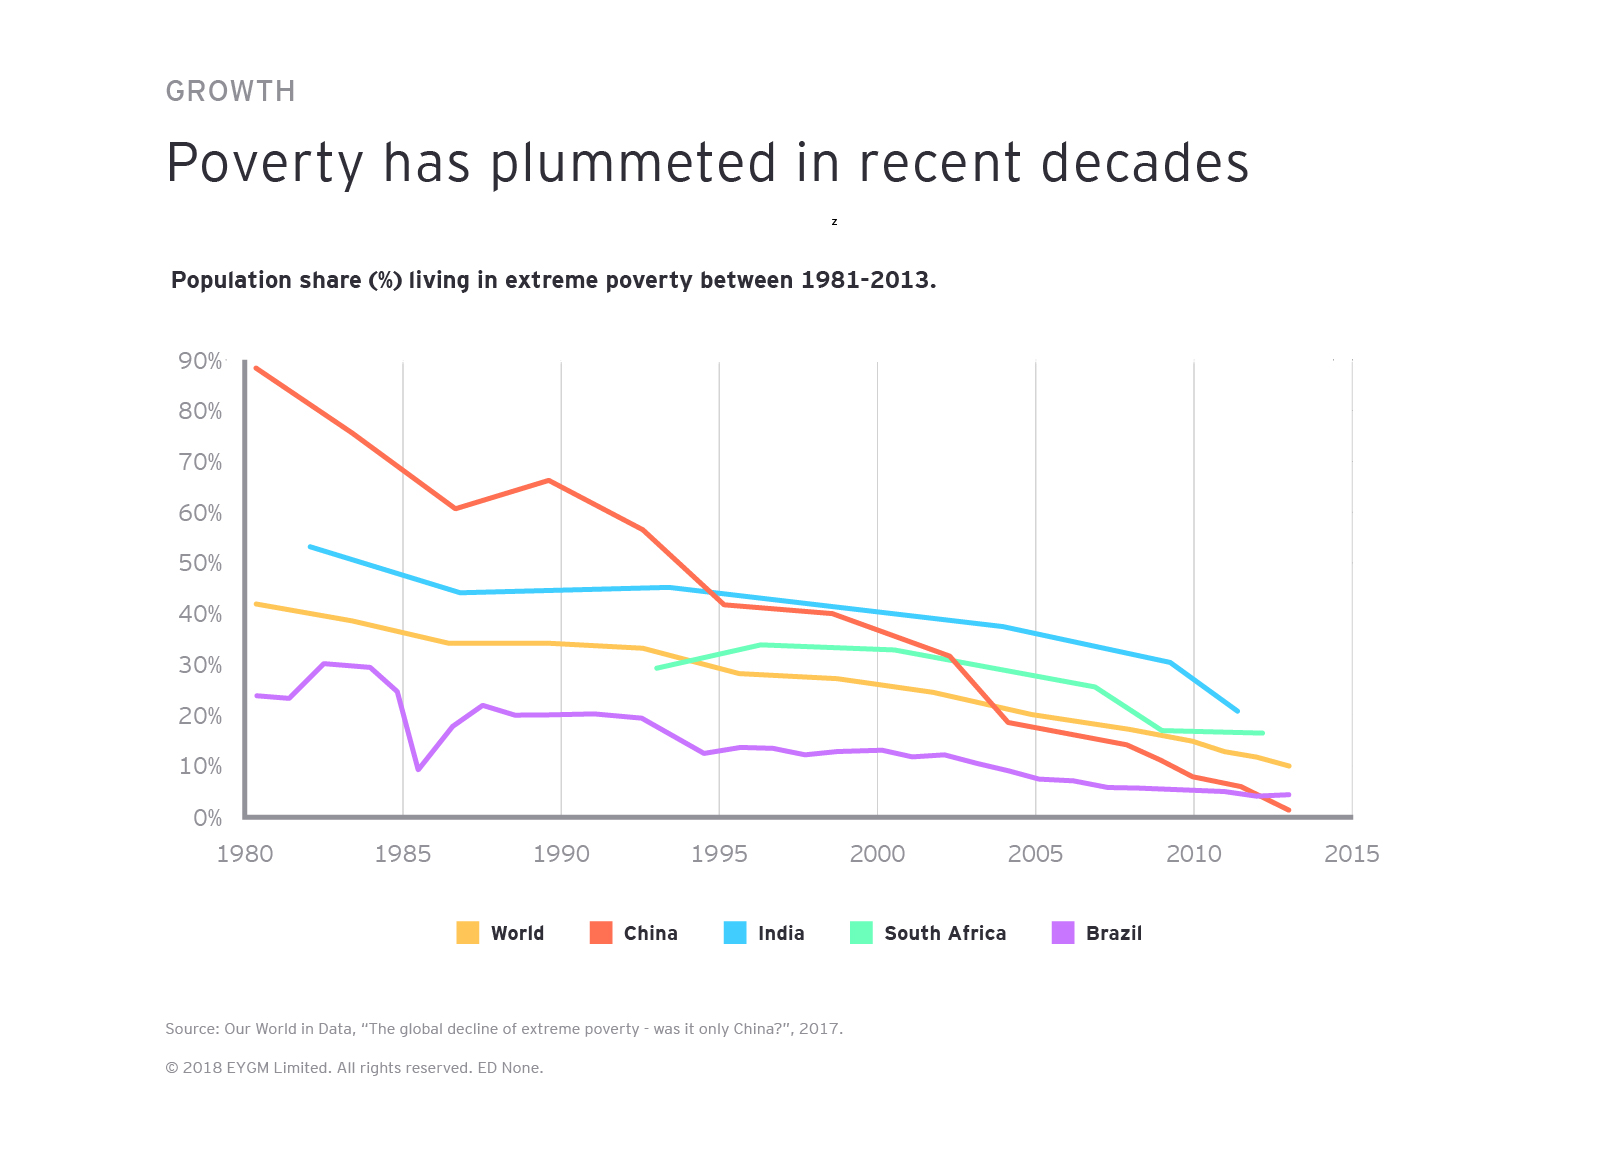 Poverty has plummeted in recent decades